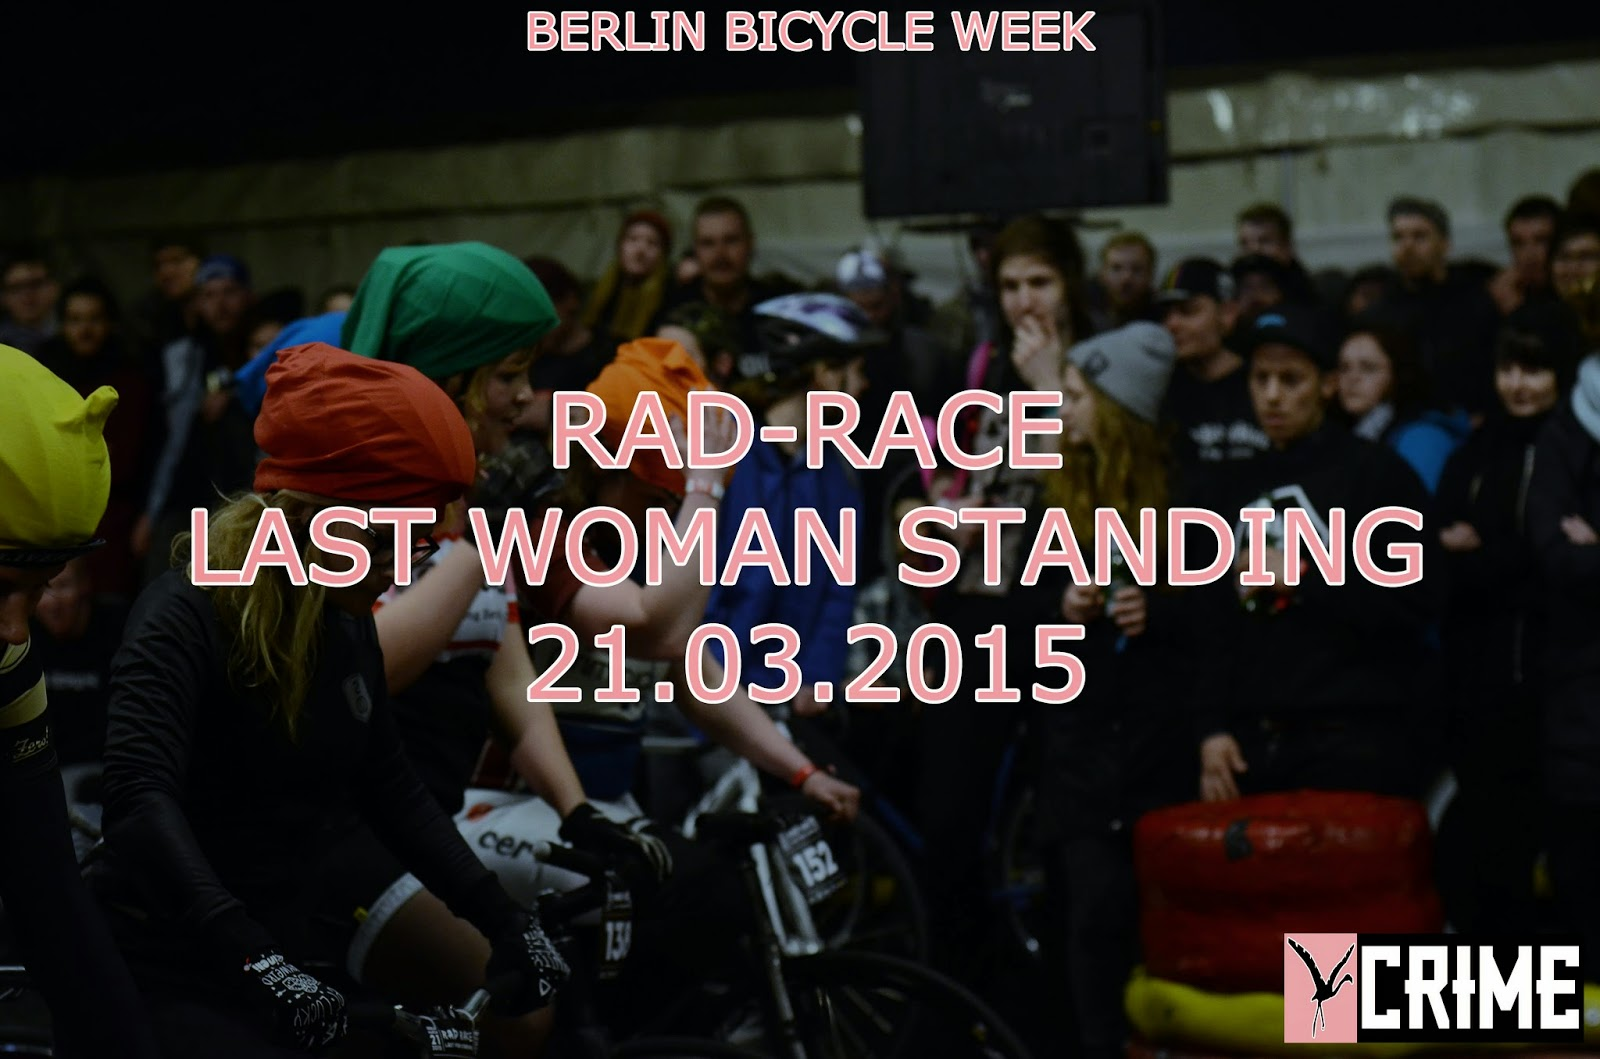 http://fmgx.blogspot.de/2015/03/berlin-bicycle-week-rad-race-last-women.html